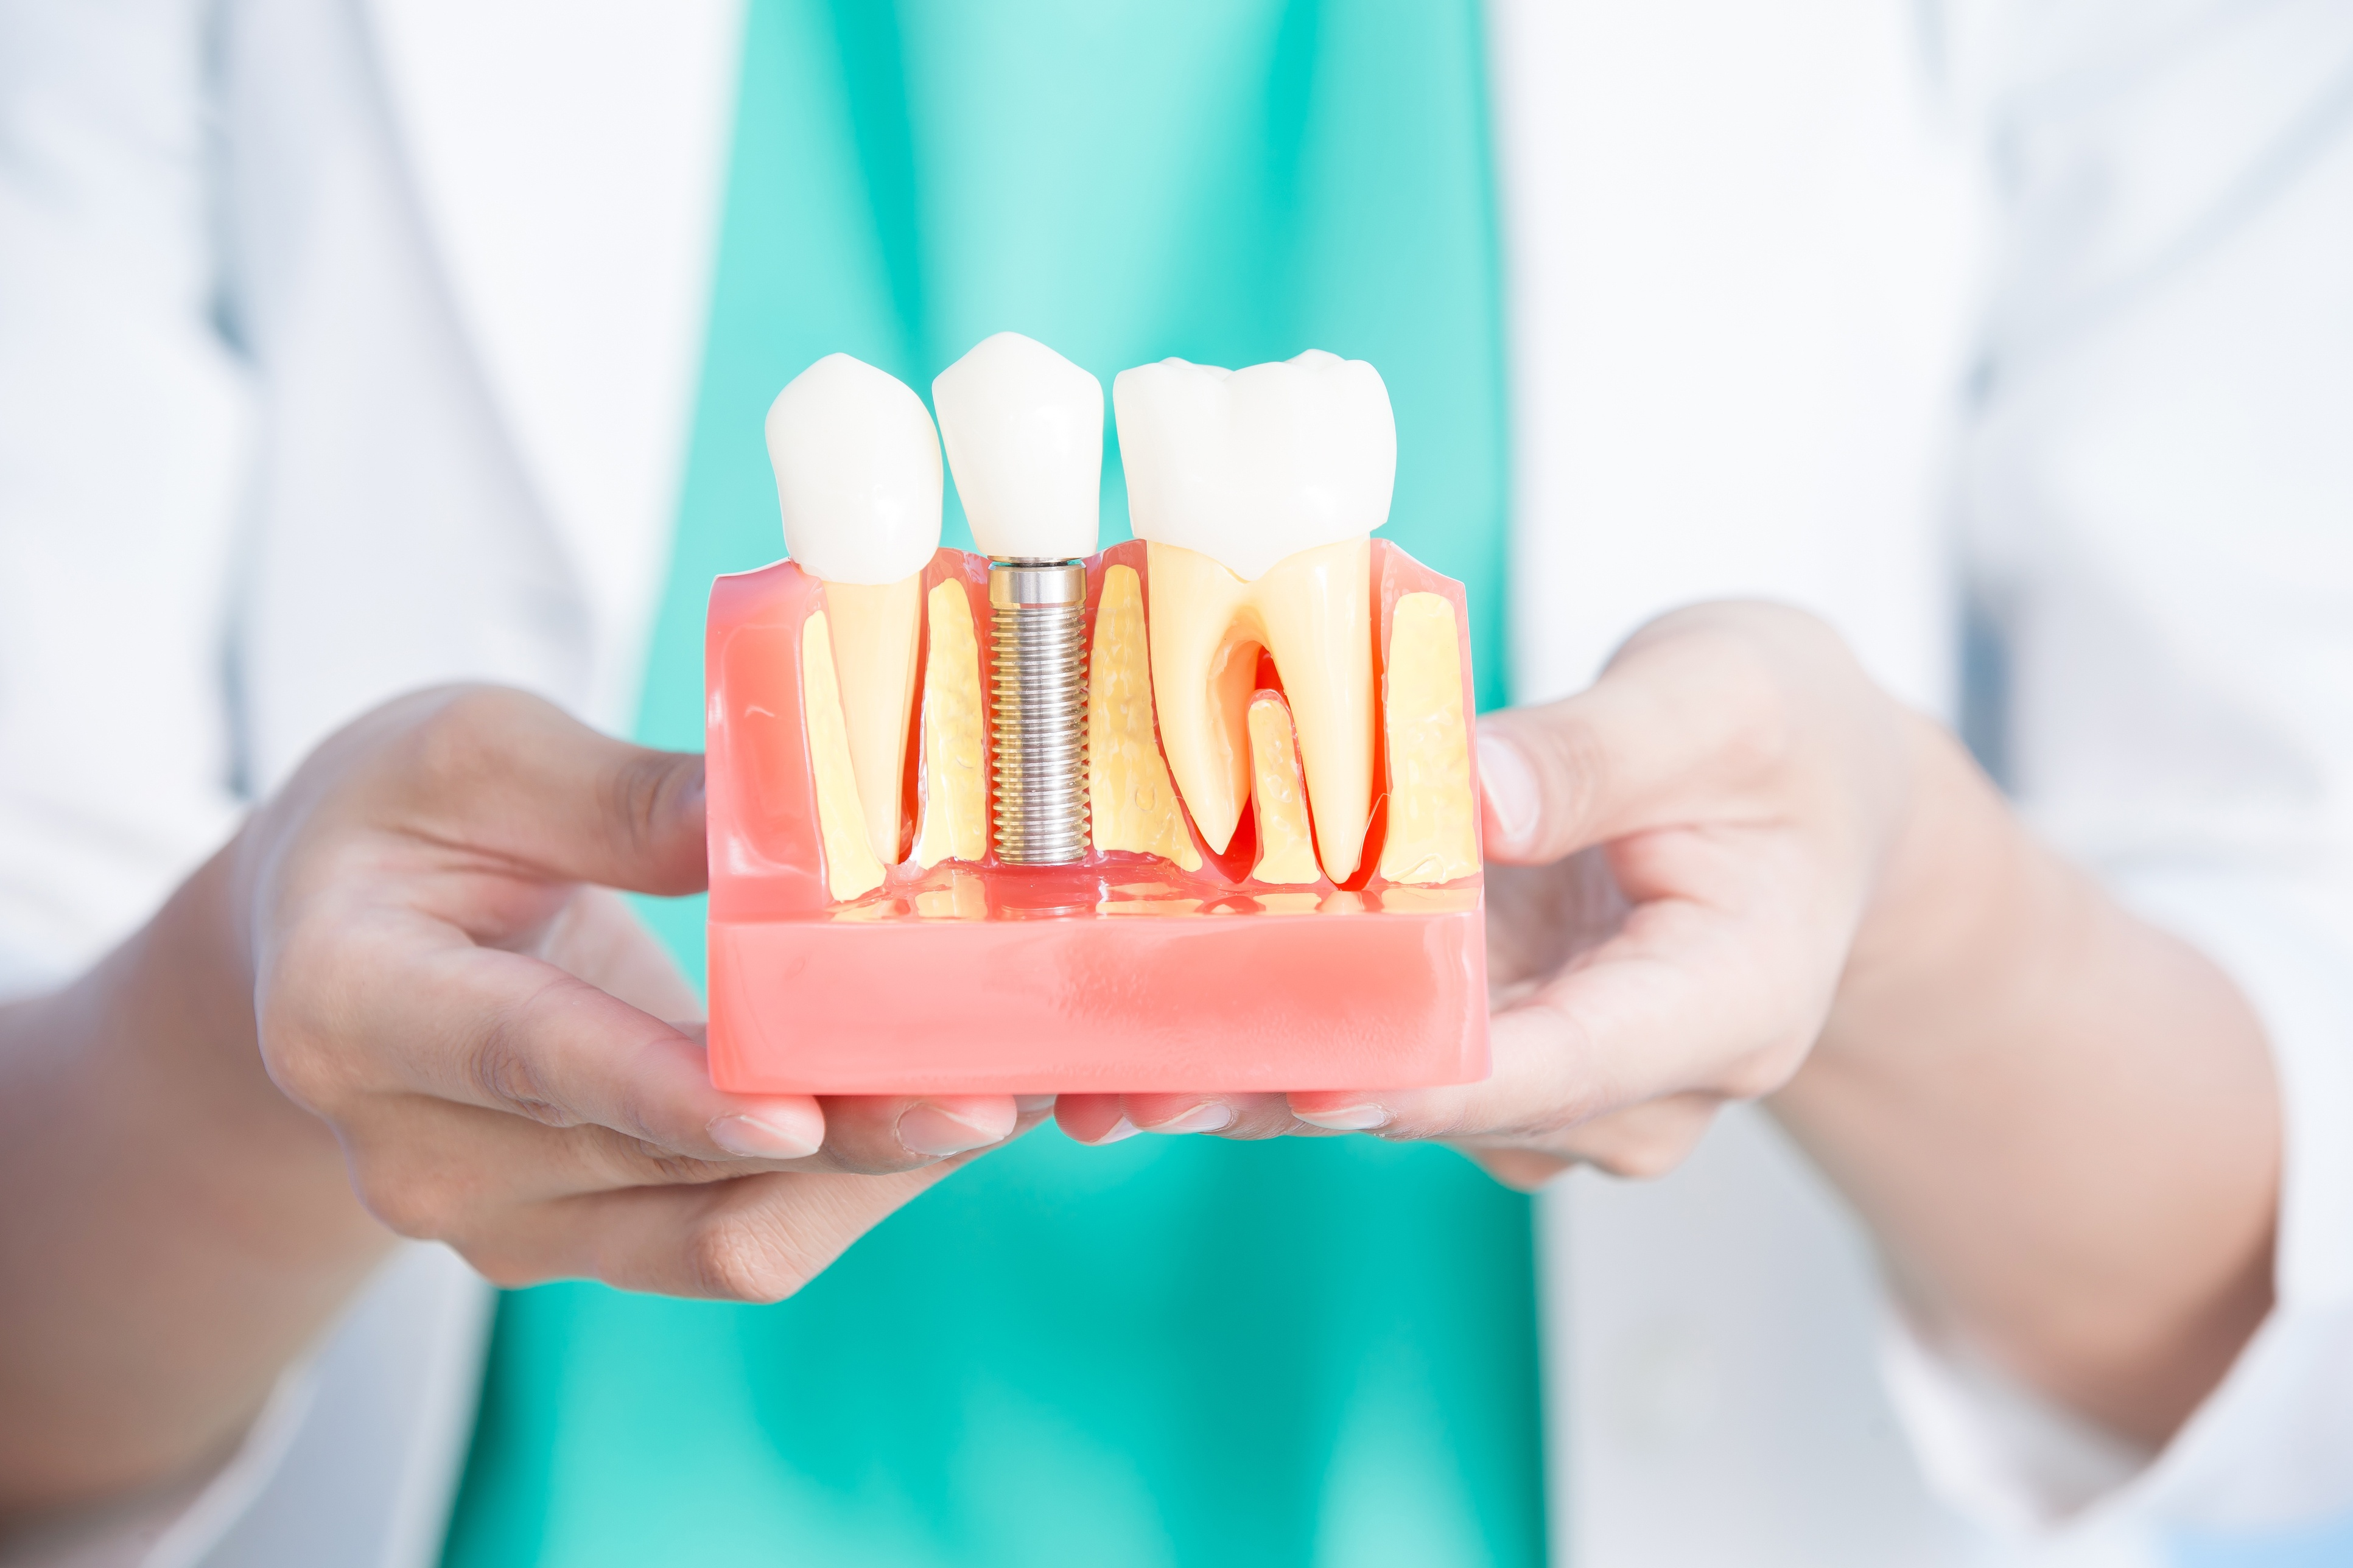 dental implants, reasons to get implants, who does dental implants, does dental insurance cover implants